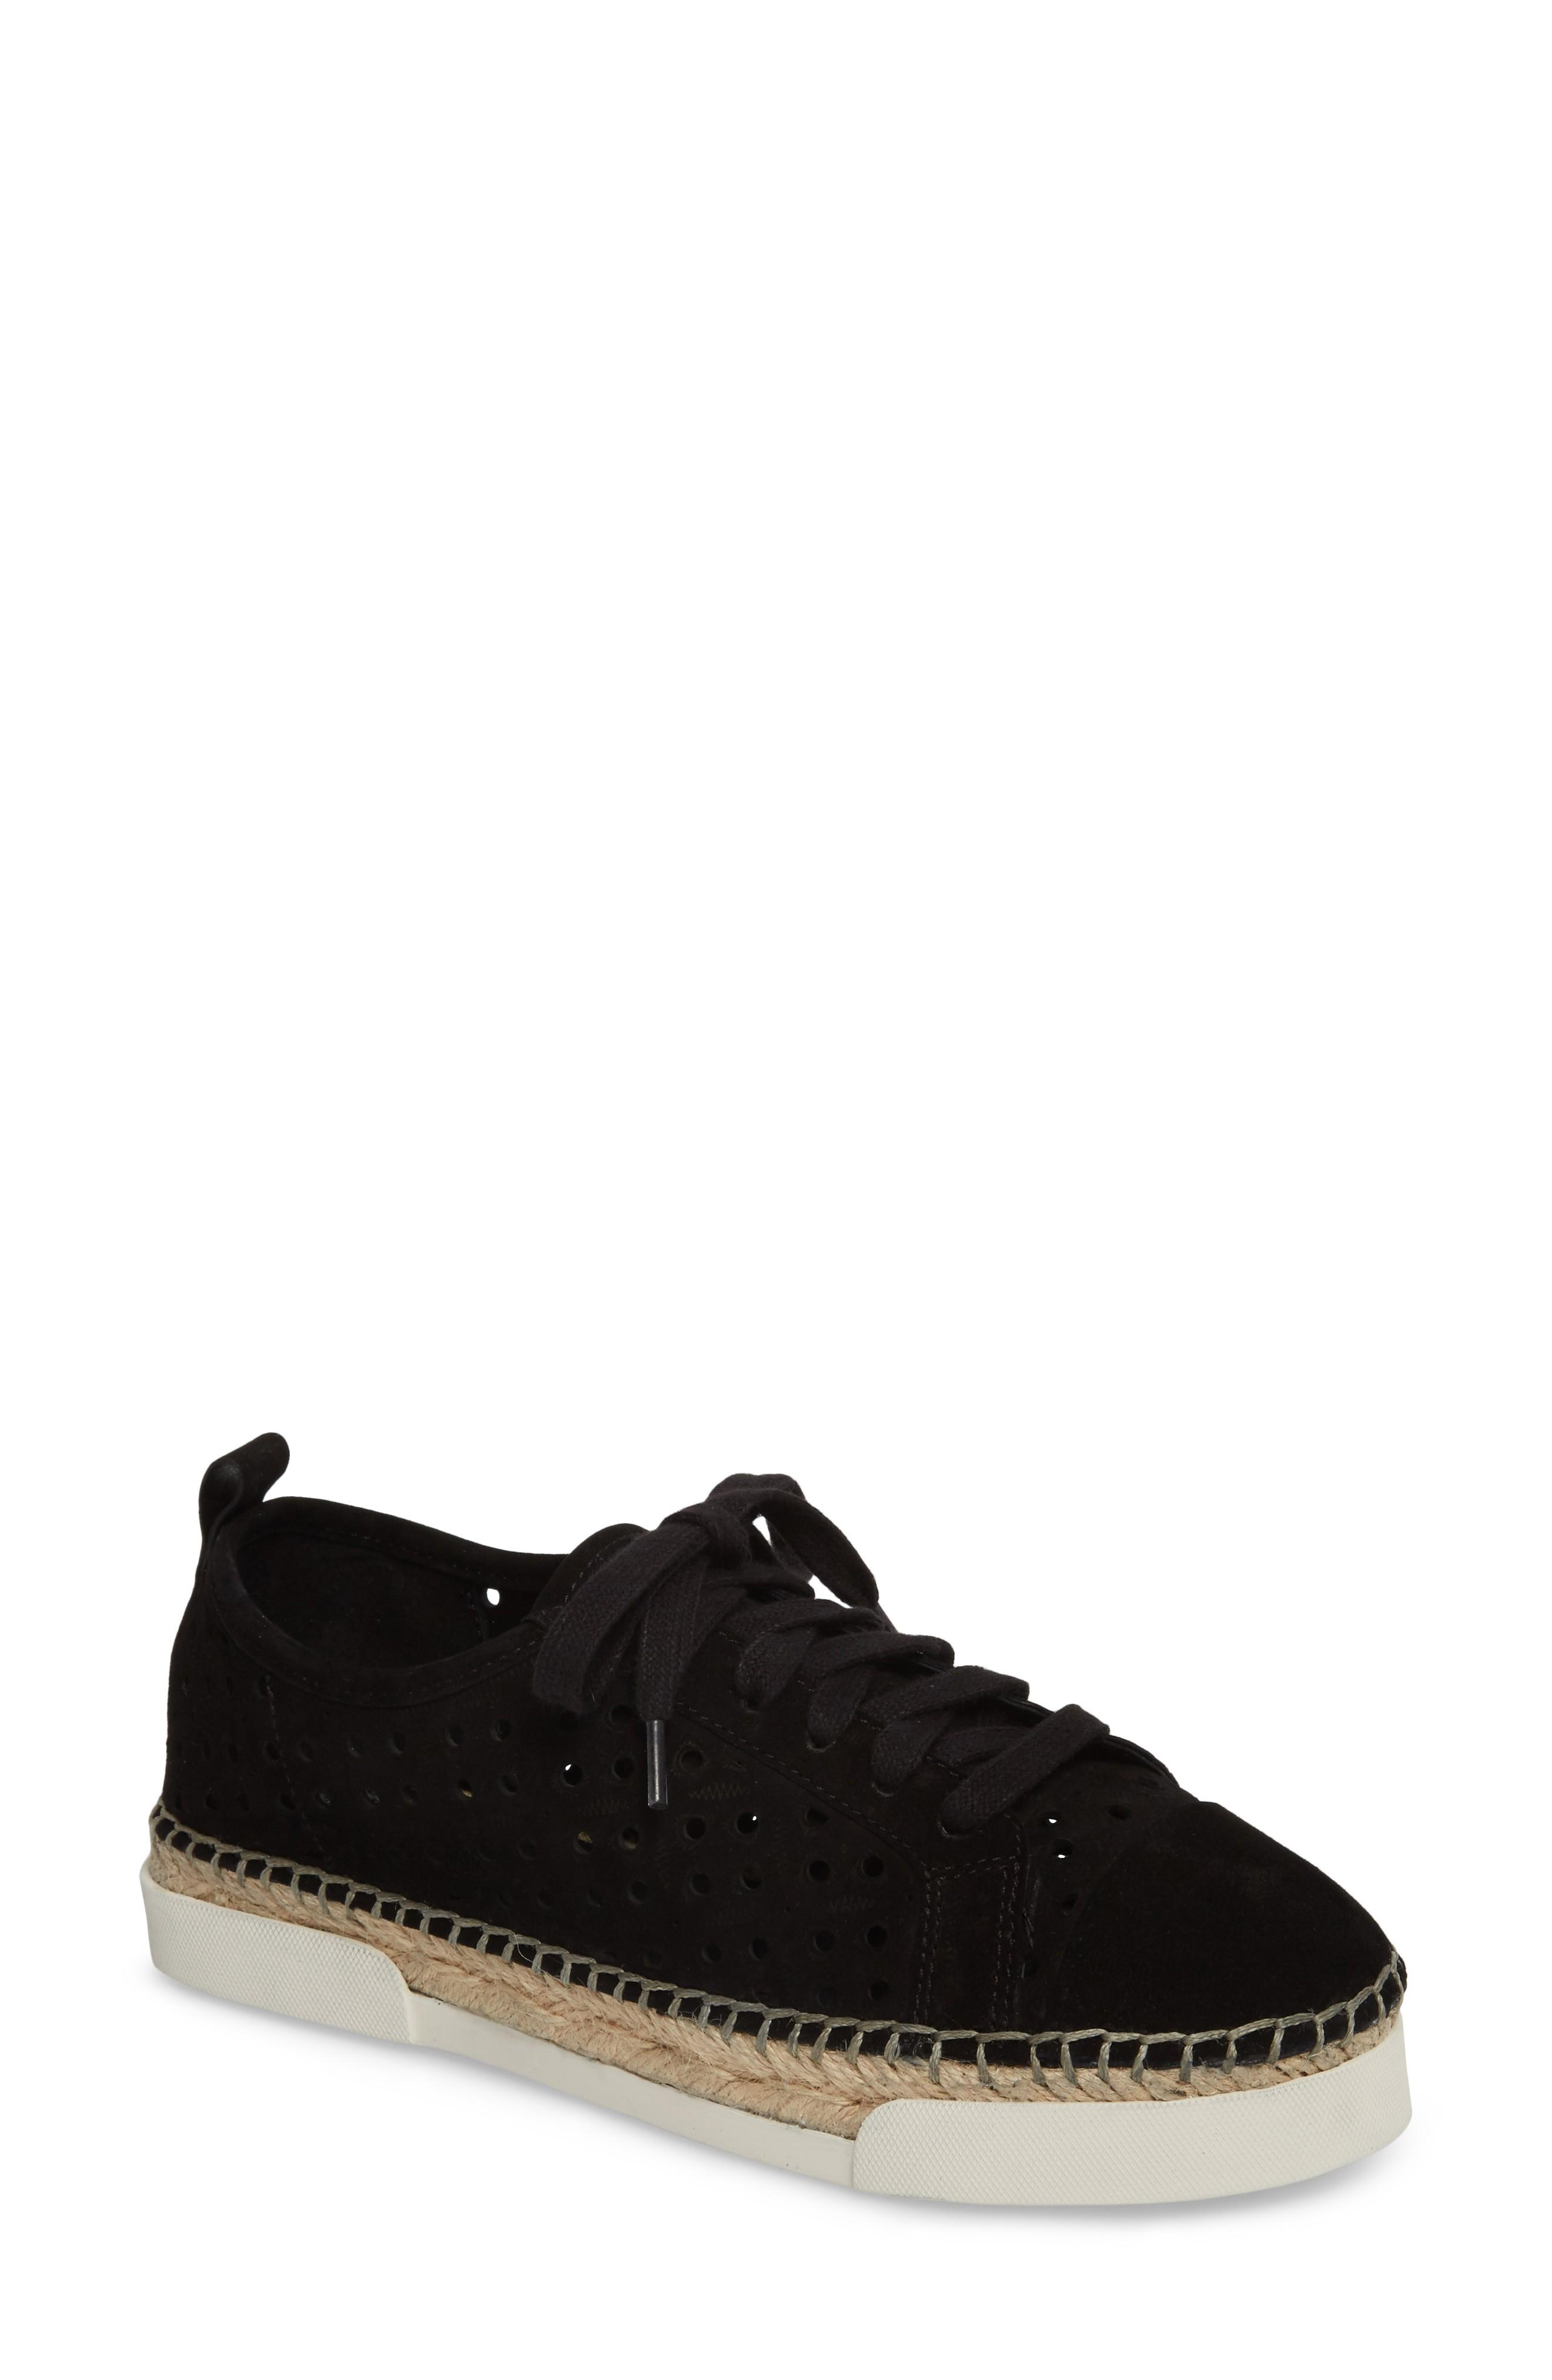 b0ec1483267 Vince Camuto Theera Perforated Espadrille Sneaker In Black Nubuck Leather